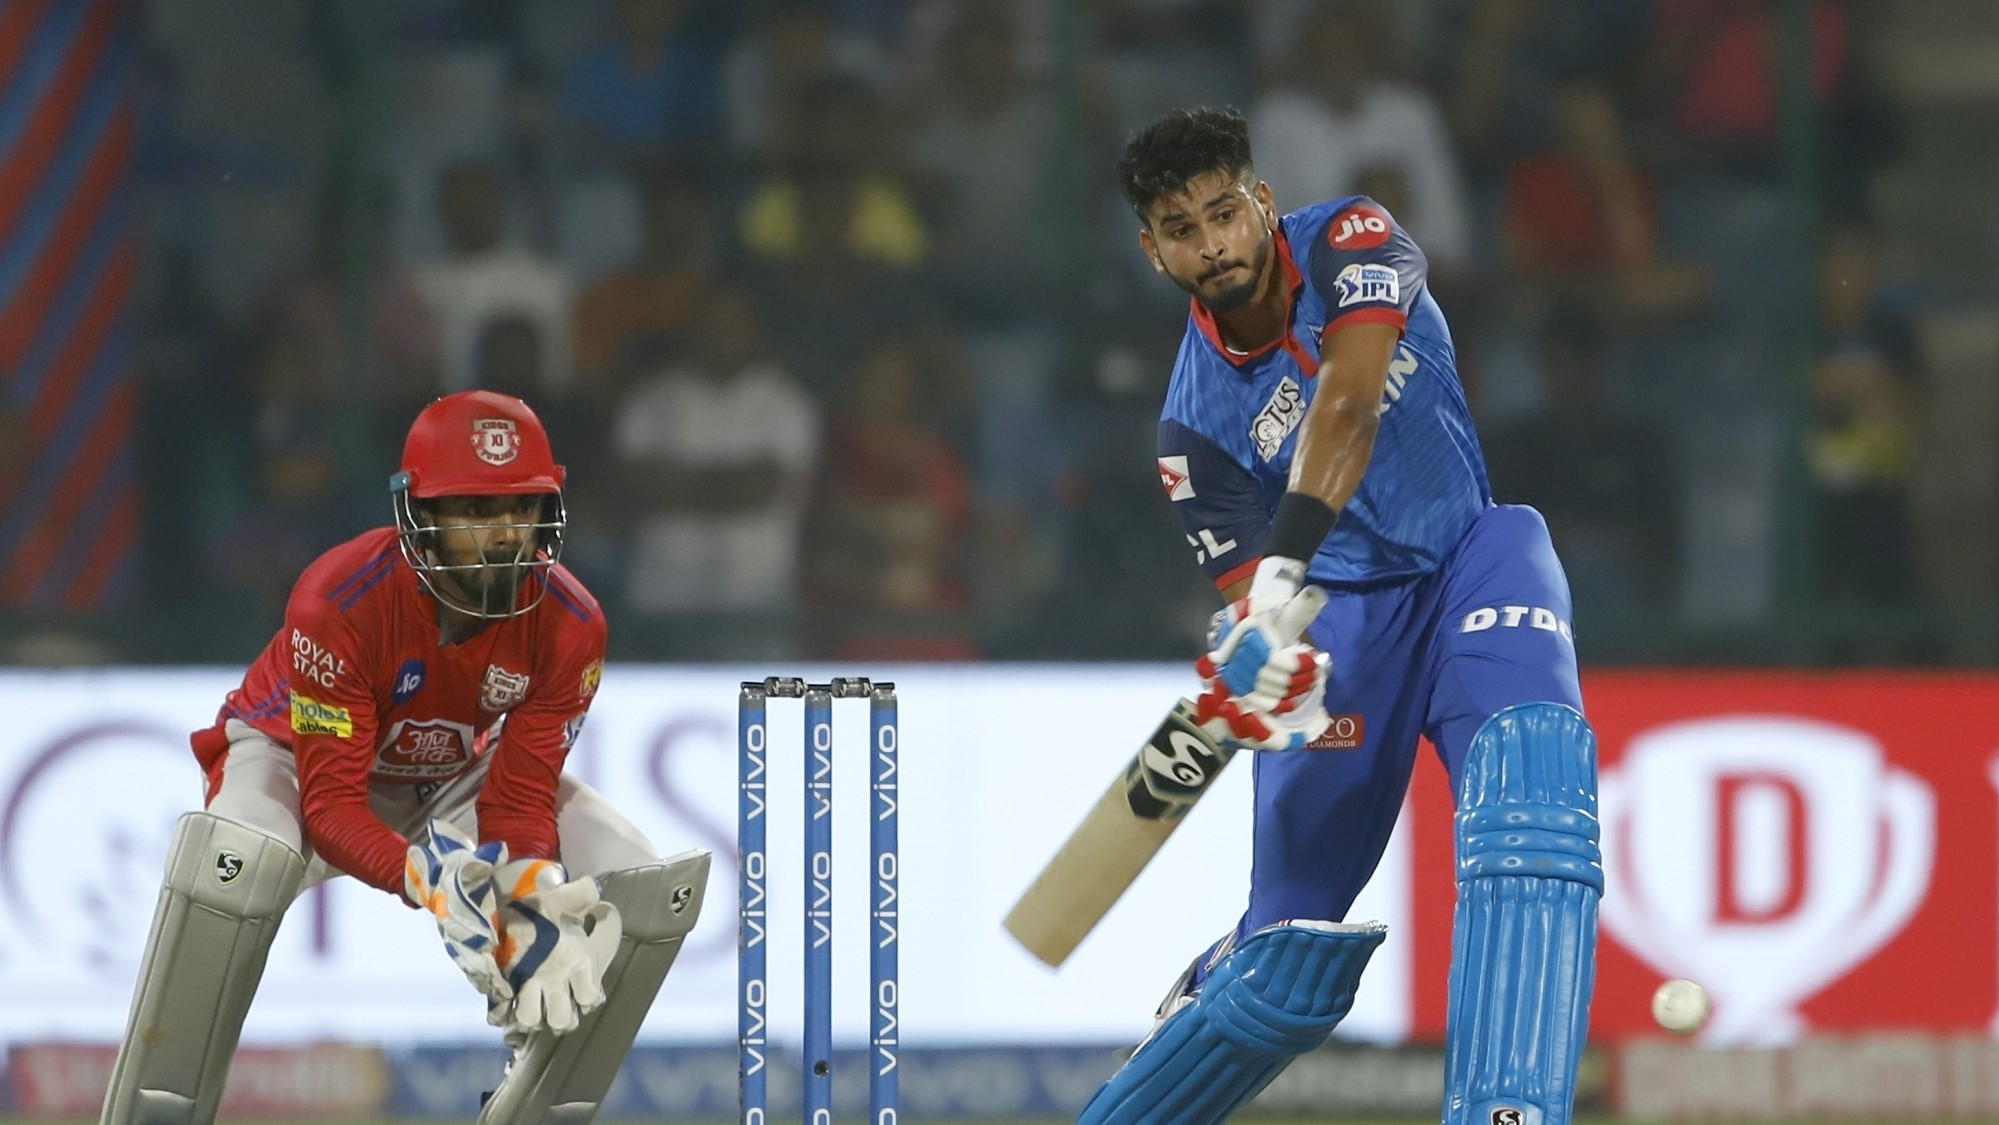 IPL 2019: DC v KXIP – Iyer and Dhawan fifties lead DC to 5-wicket win over KXIP